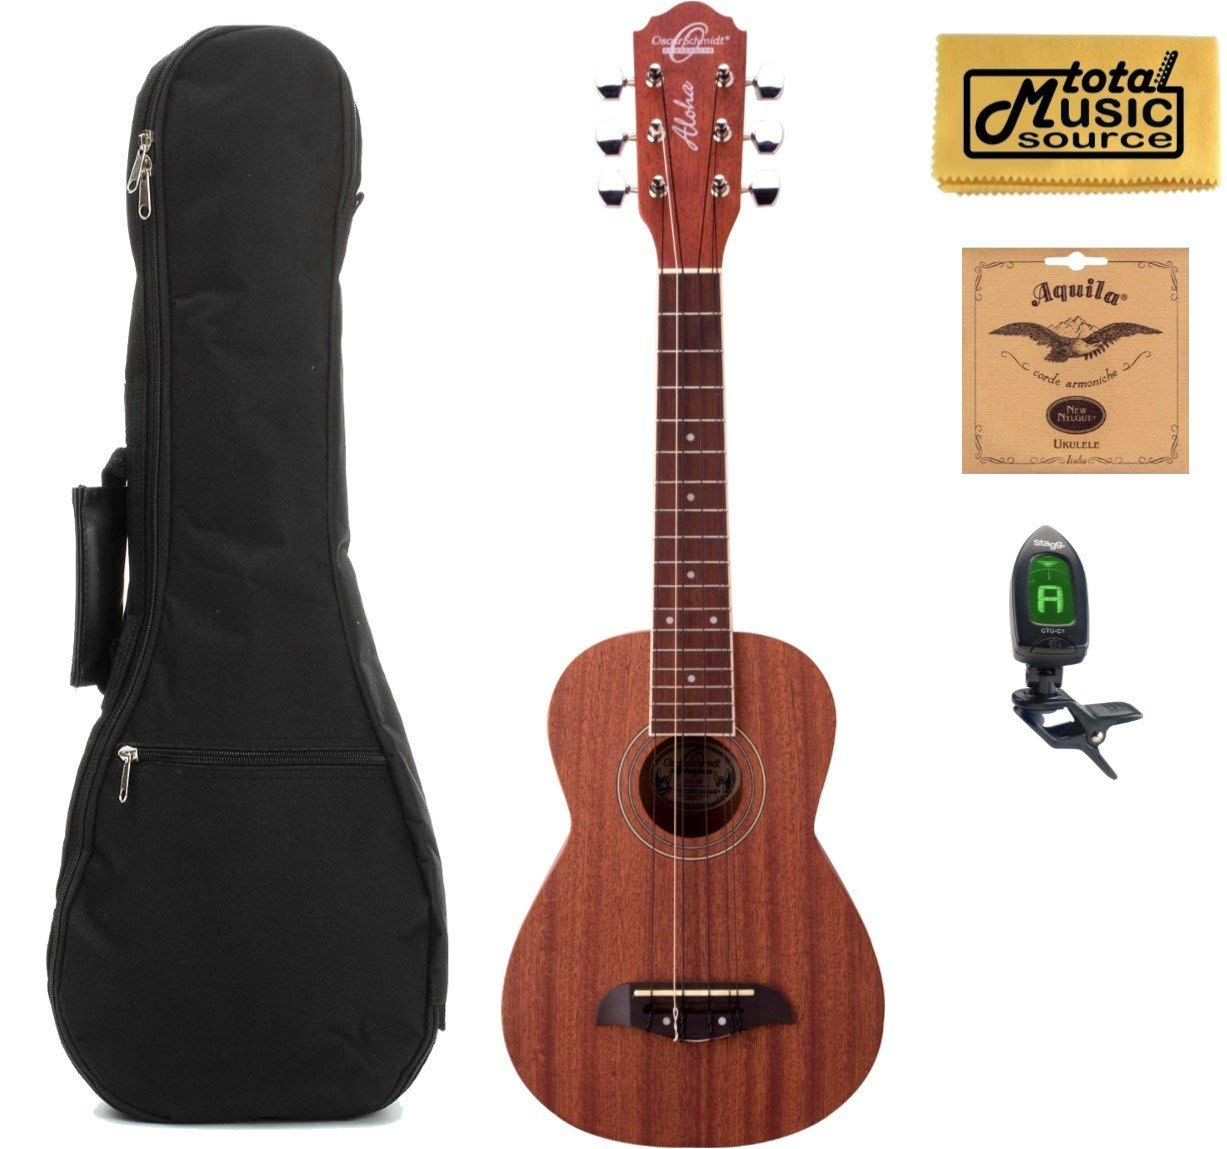 Oscar Schmidt OU26T 6-String Tenor Ukulele, Mahogany Body, Satin Finish, Includes TMS Polishing Cloth, Padded Gig Bag, Profile Digital Clip-On Tuner and Extra Set of Aquila 17U Strings